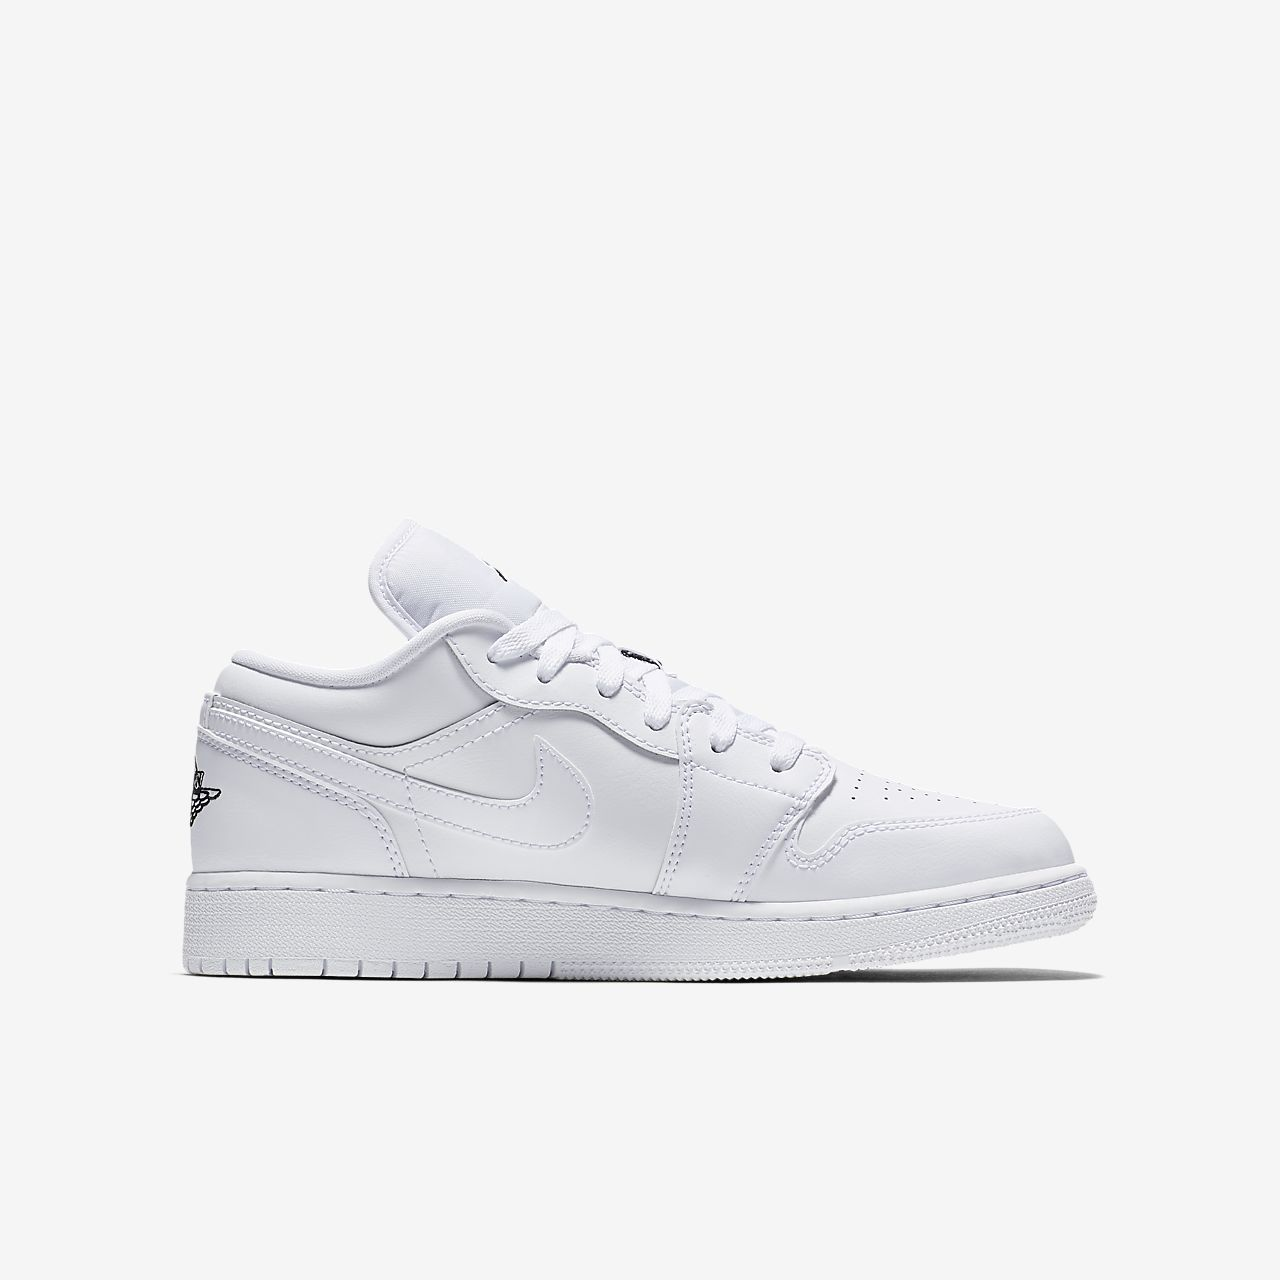 f08ab2b99f4cc3 Air Jordan 1 Low Older Kids  Shoe. Nike.com GB